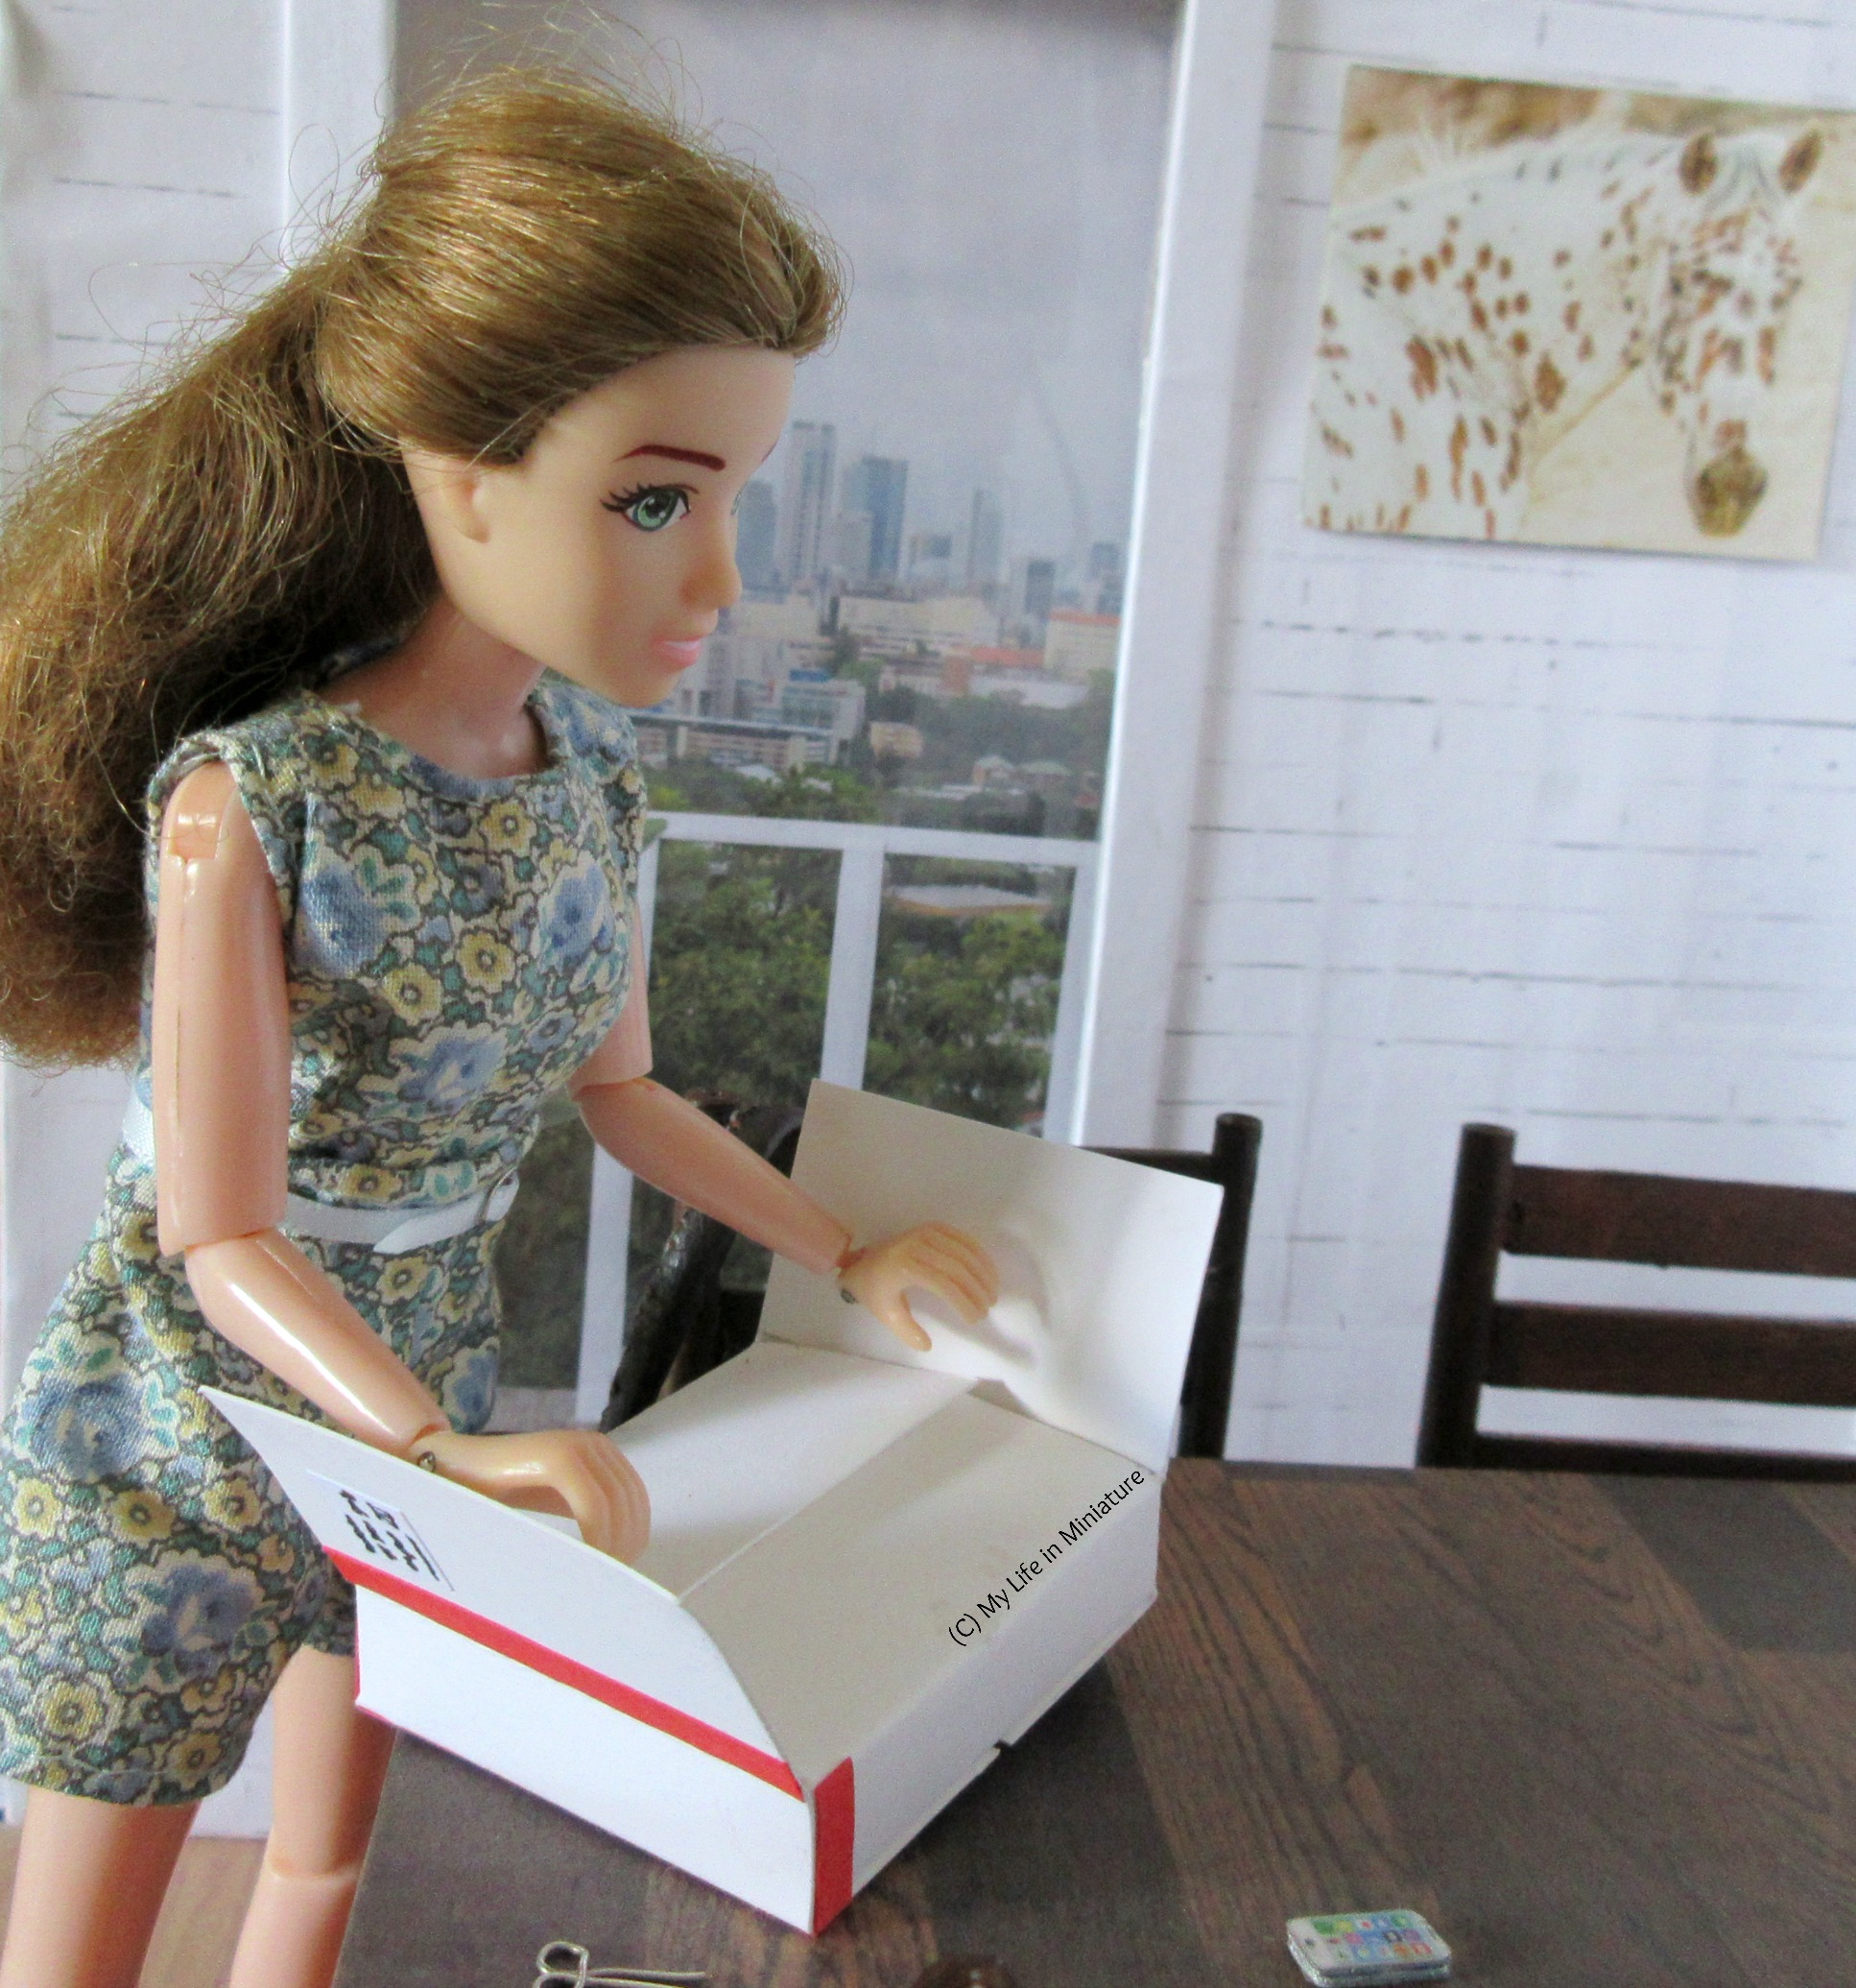 Sarah looks down at the parcel on her table as she opens the top two flaps. The flaps underneath prevent the box's contents from being seen.